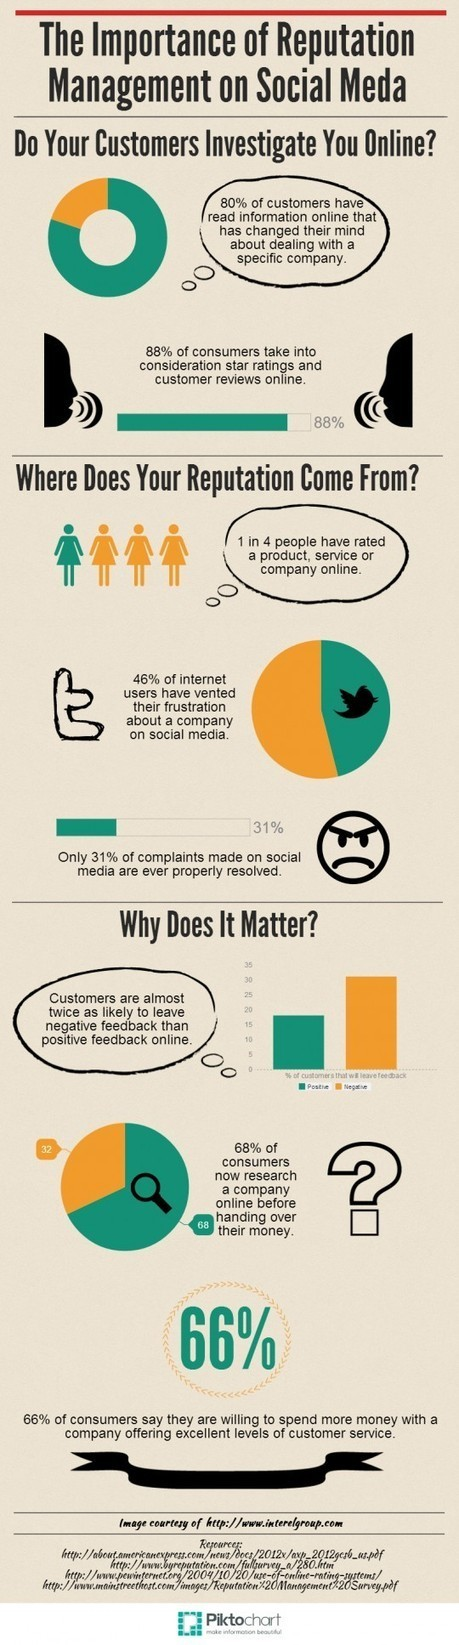 The Importance of Reputation Management on Social Media   PR & Communications daily news   Scoop.it